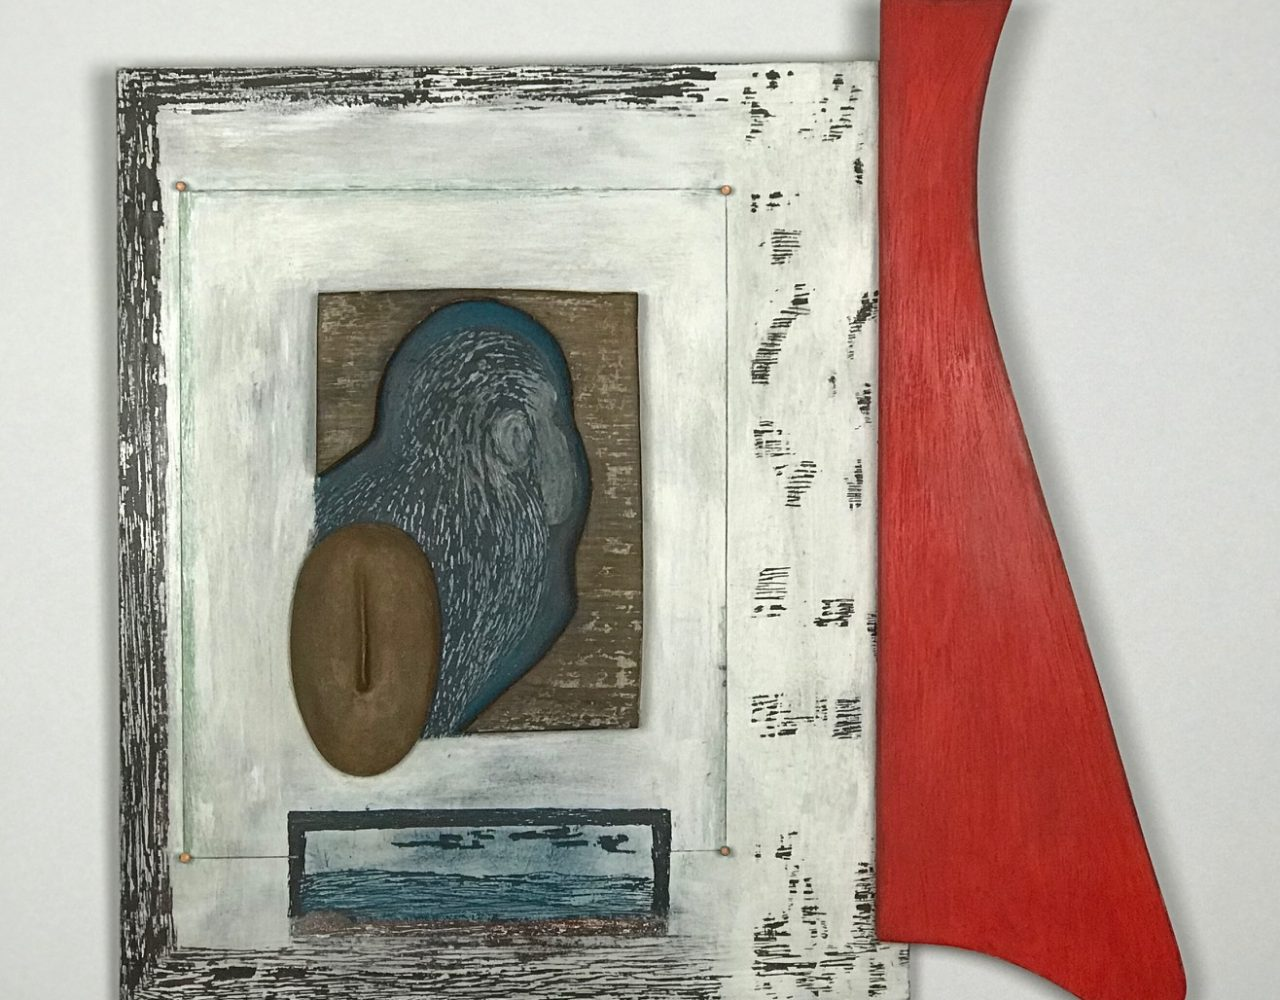 LÁ NA ÁFRICA / Técnica mista sobre MDF </br>